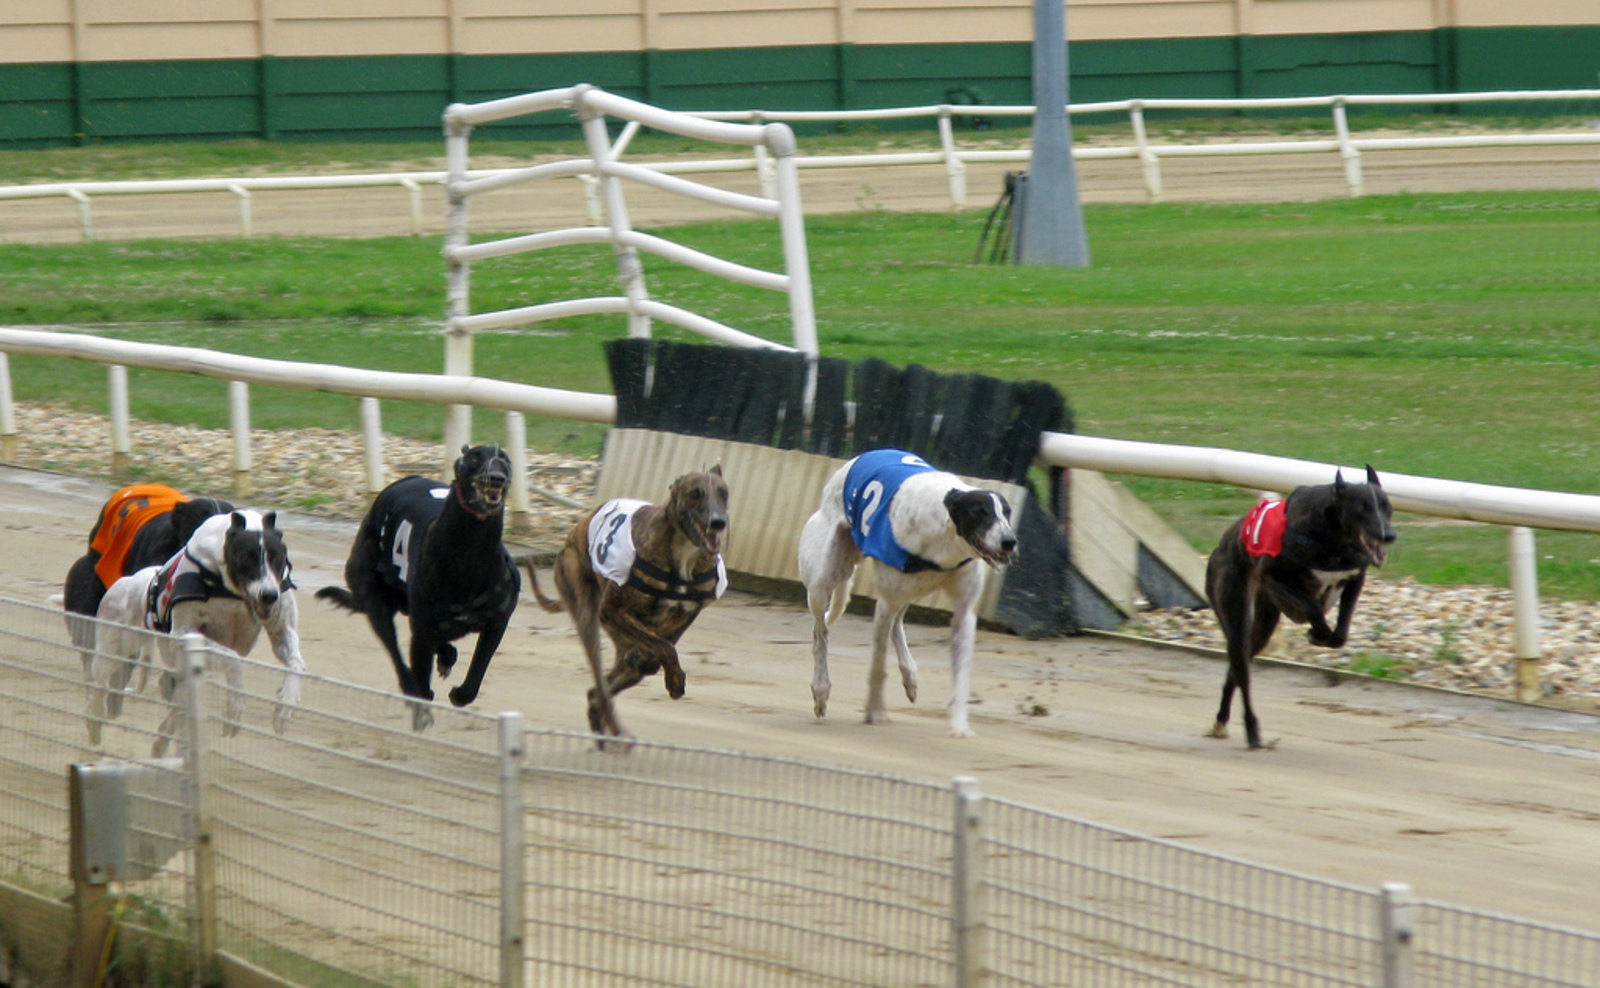 The Shocking Cruelty Lurking Behind the Greyhound Racing Industry